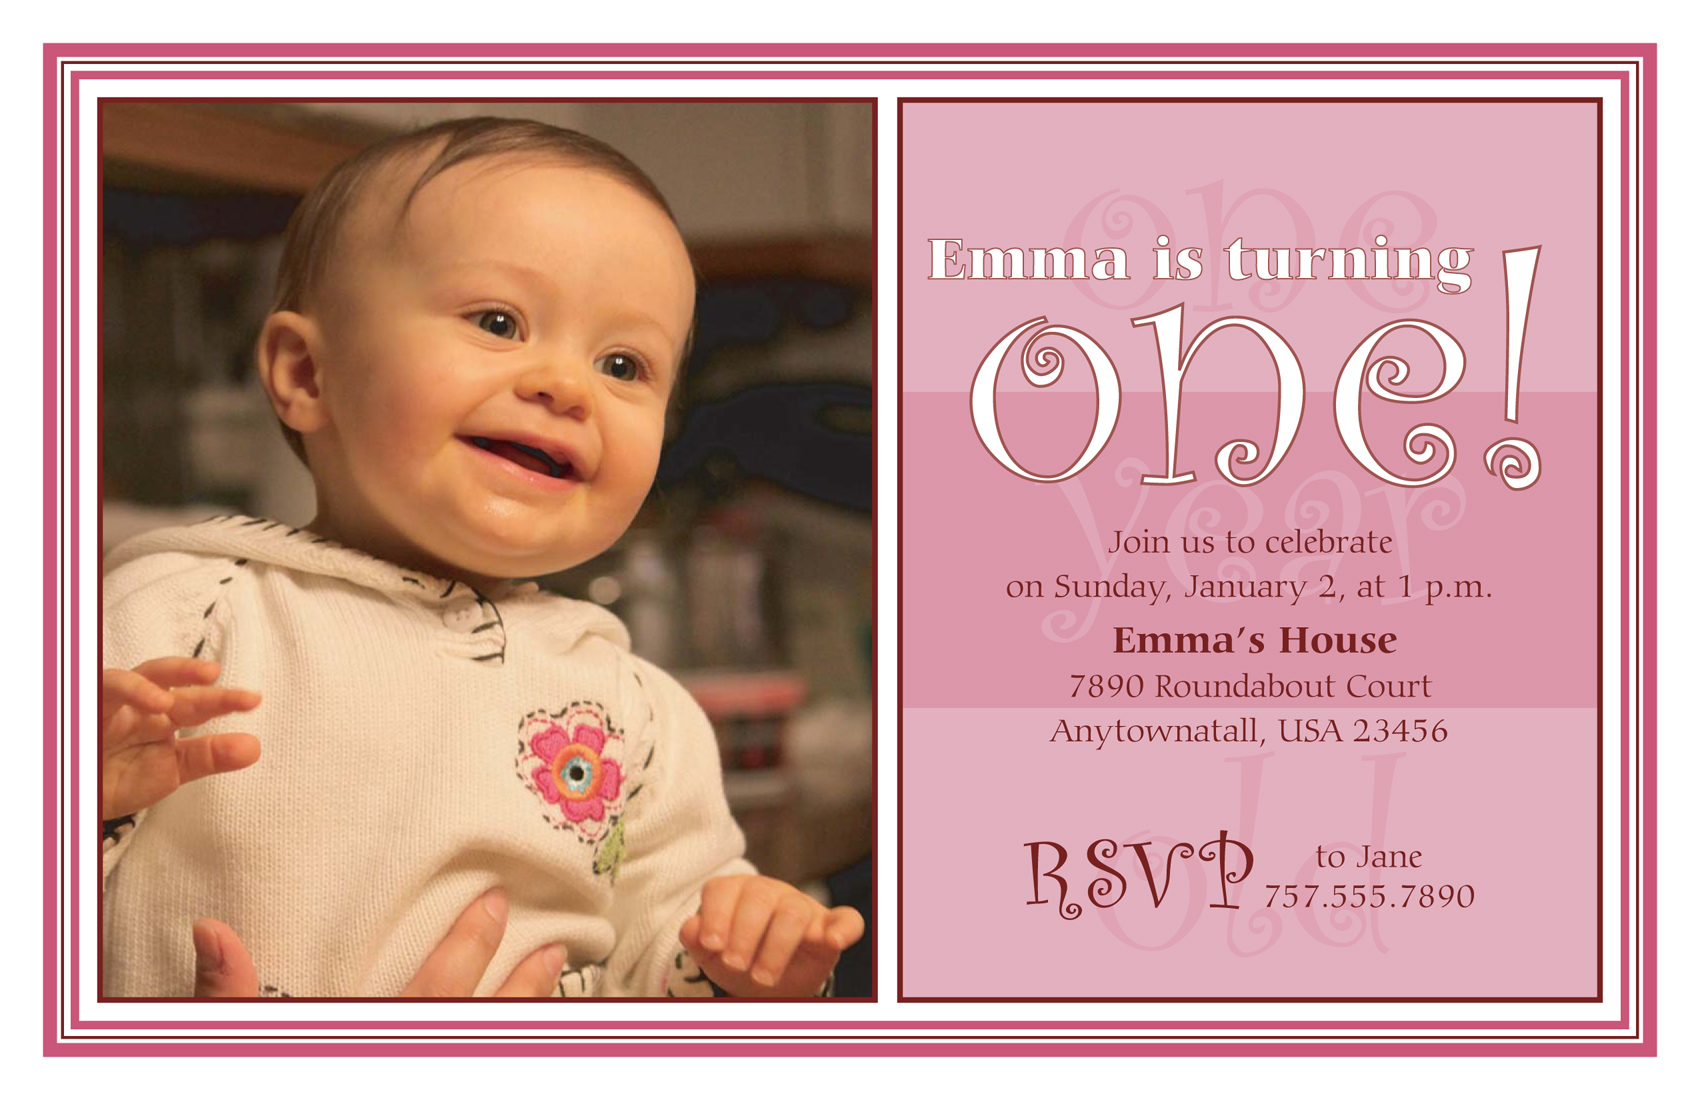 1st year birthday invitation card design ; first-birthday-party-invitations-with-graceful-template-Birthday-Invitation-Cards-invitation-card-design-using-a-unique-design-2